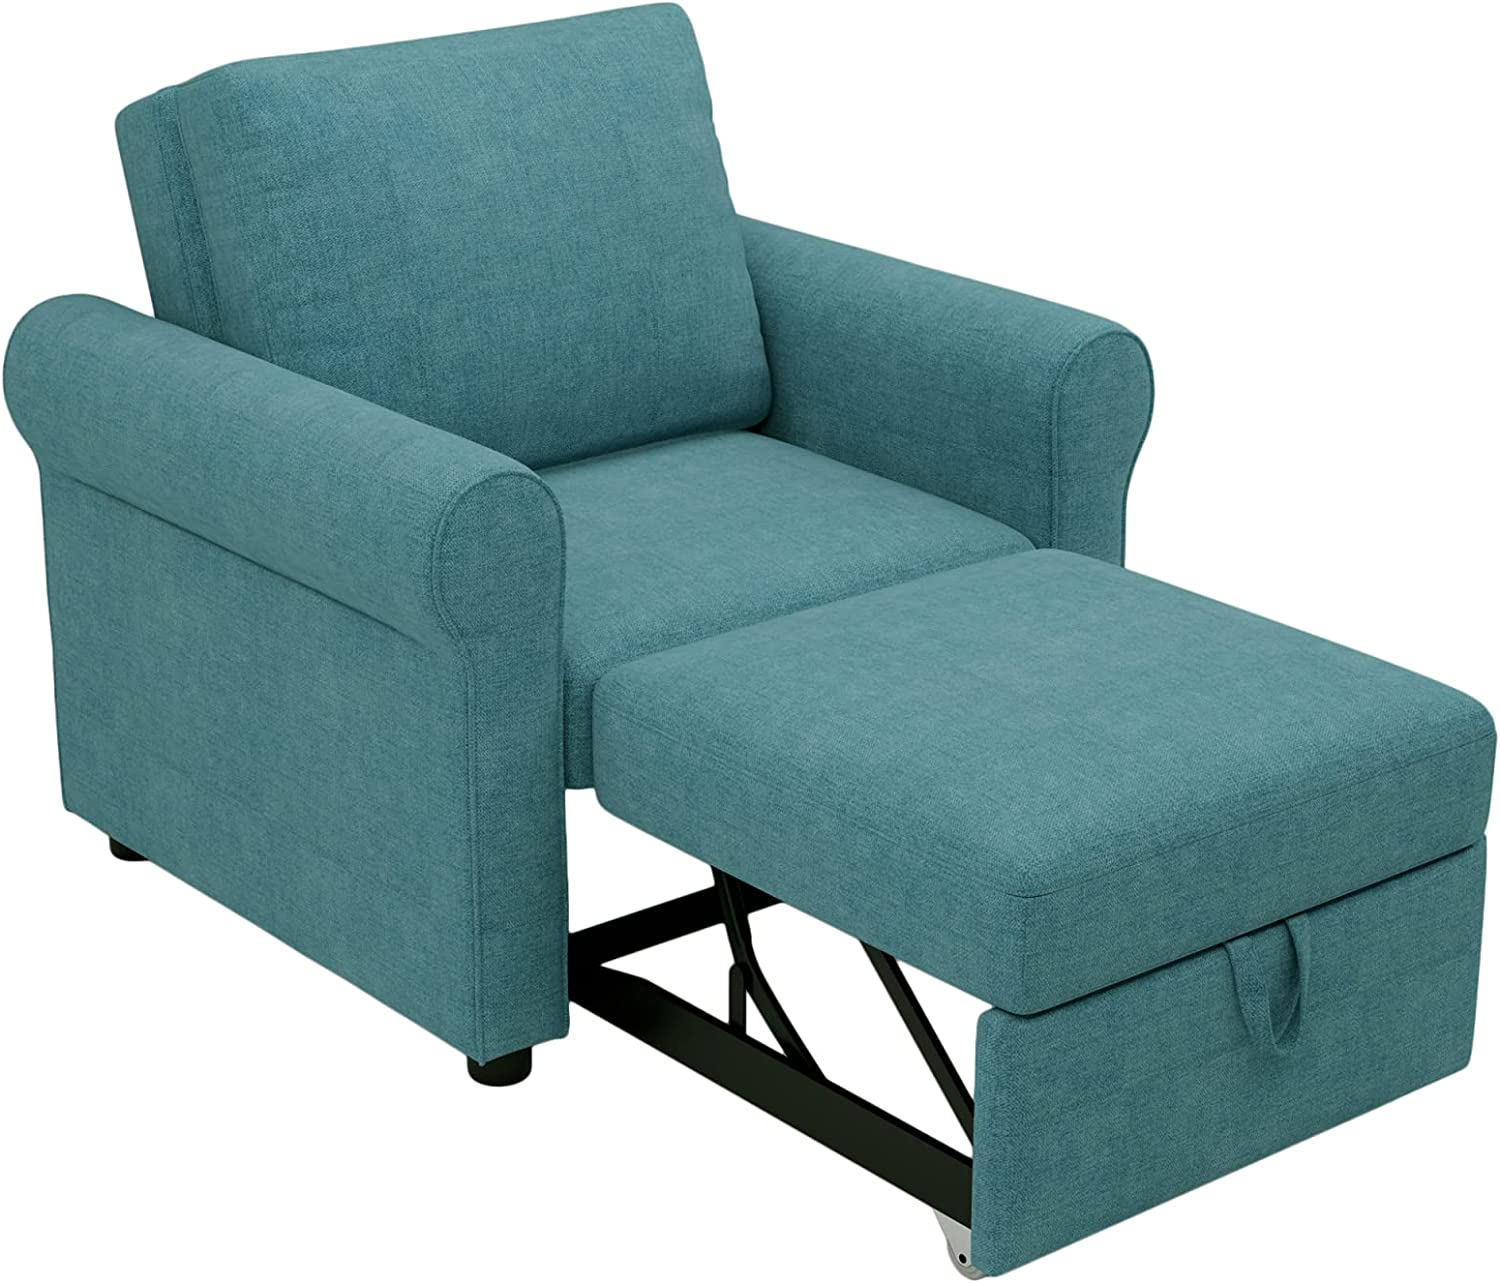 Babody 3-in-1 Sofa Bed Chair Max 76% OFF Convertible OFFicial Sleeper Adju